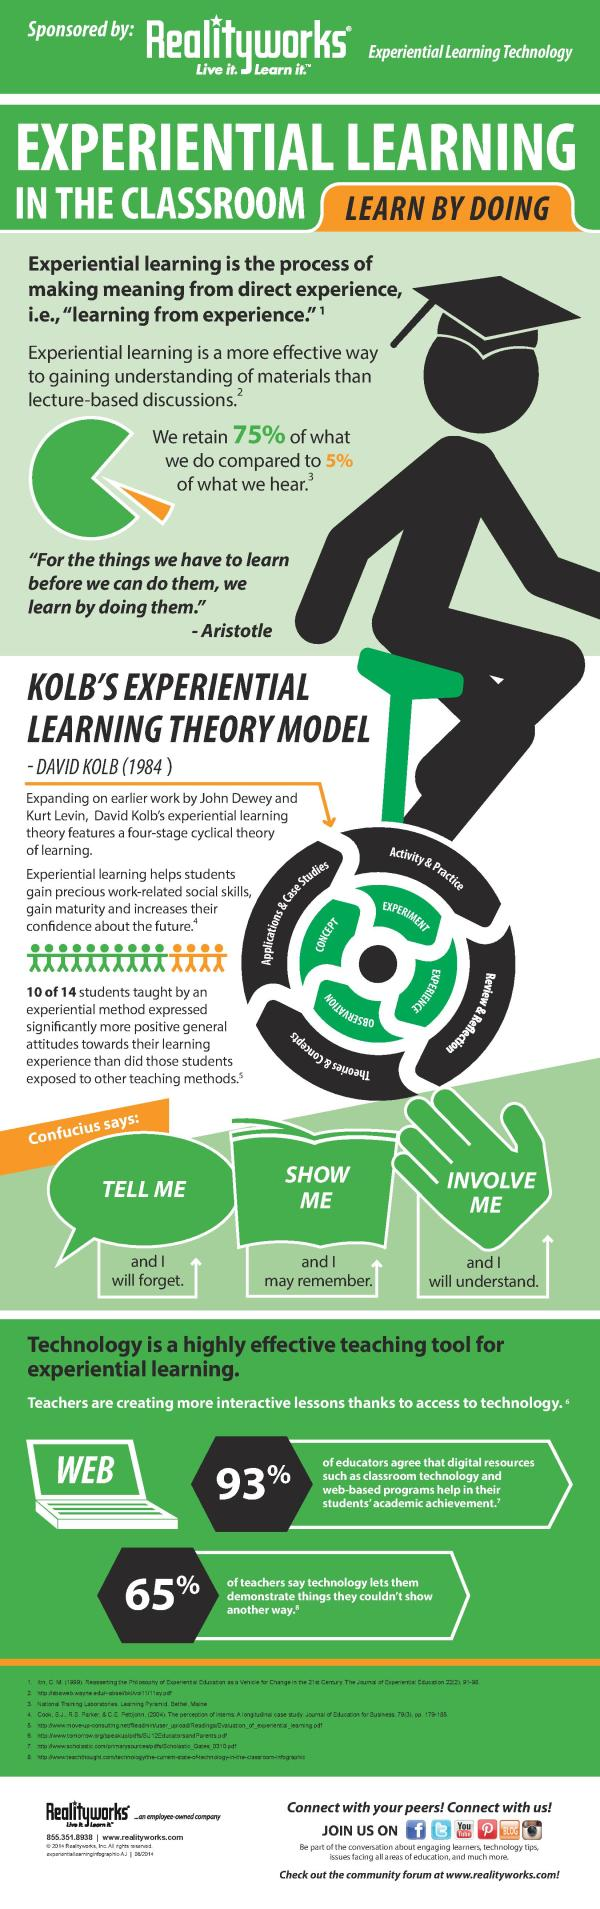 experientiallearninginfographic-8-2014-final